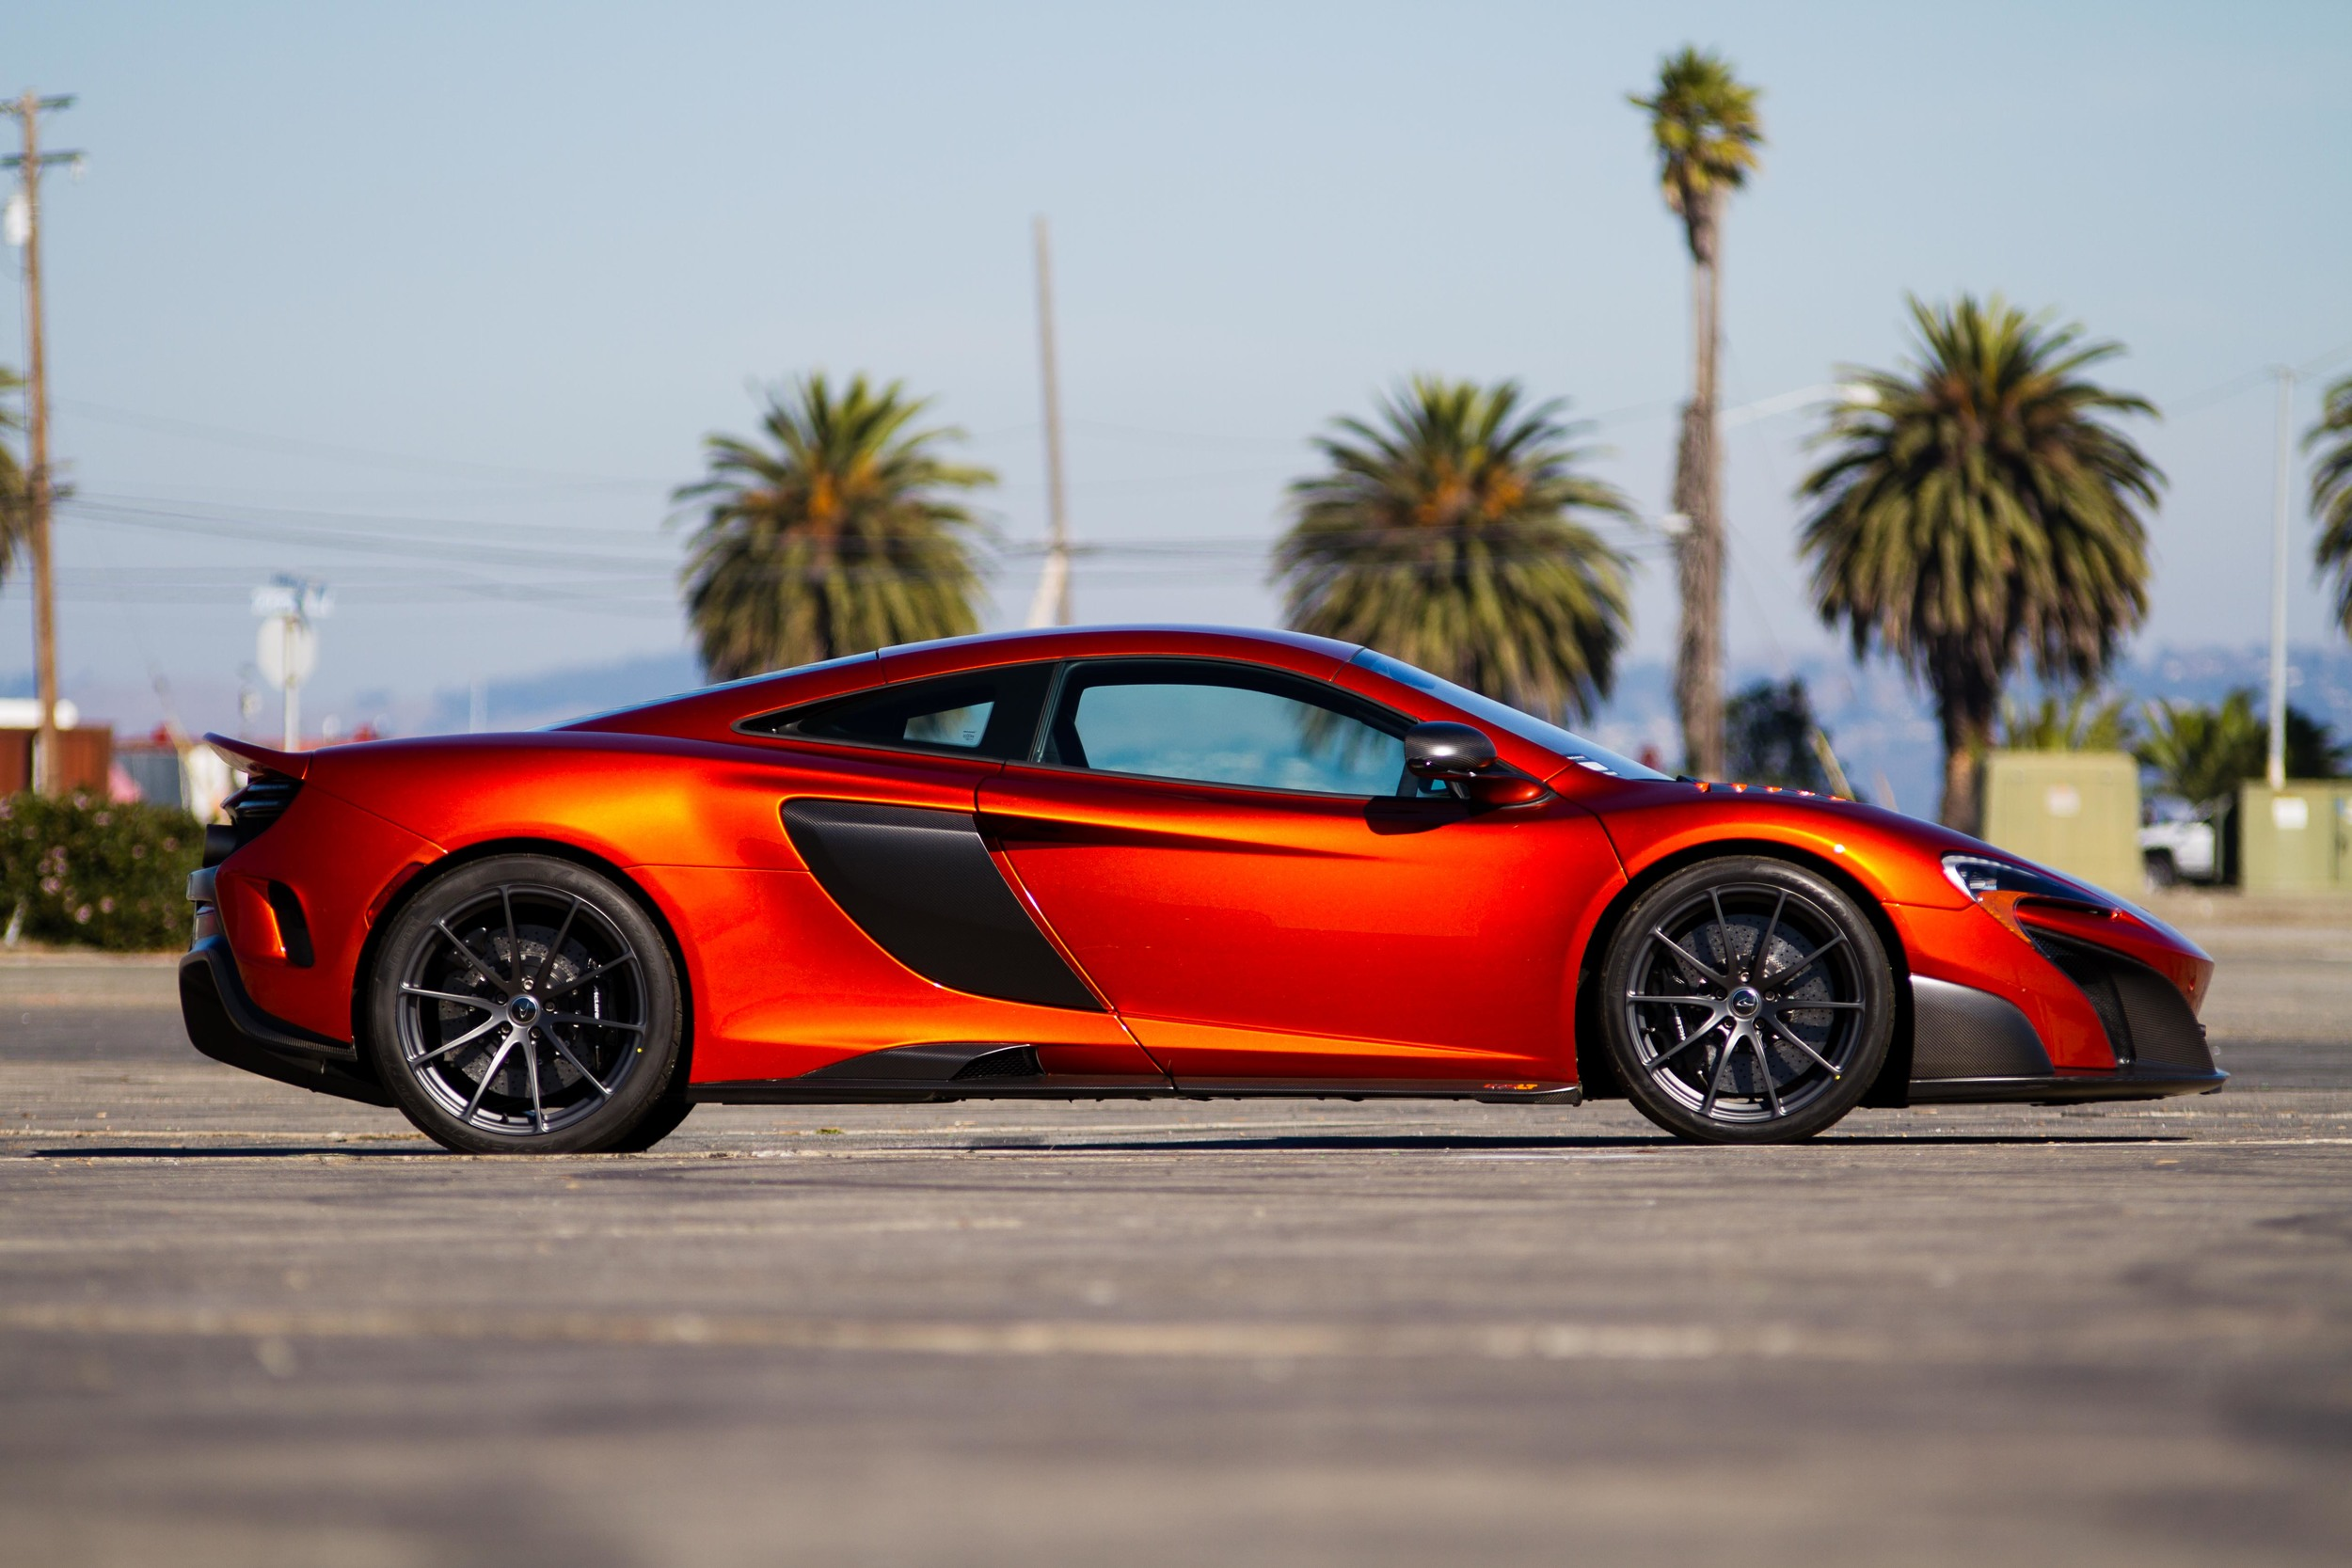 McLaren 675LT after the show, during the photoshoot.